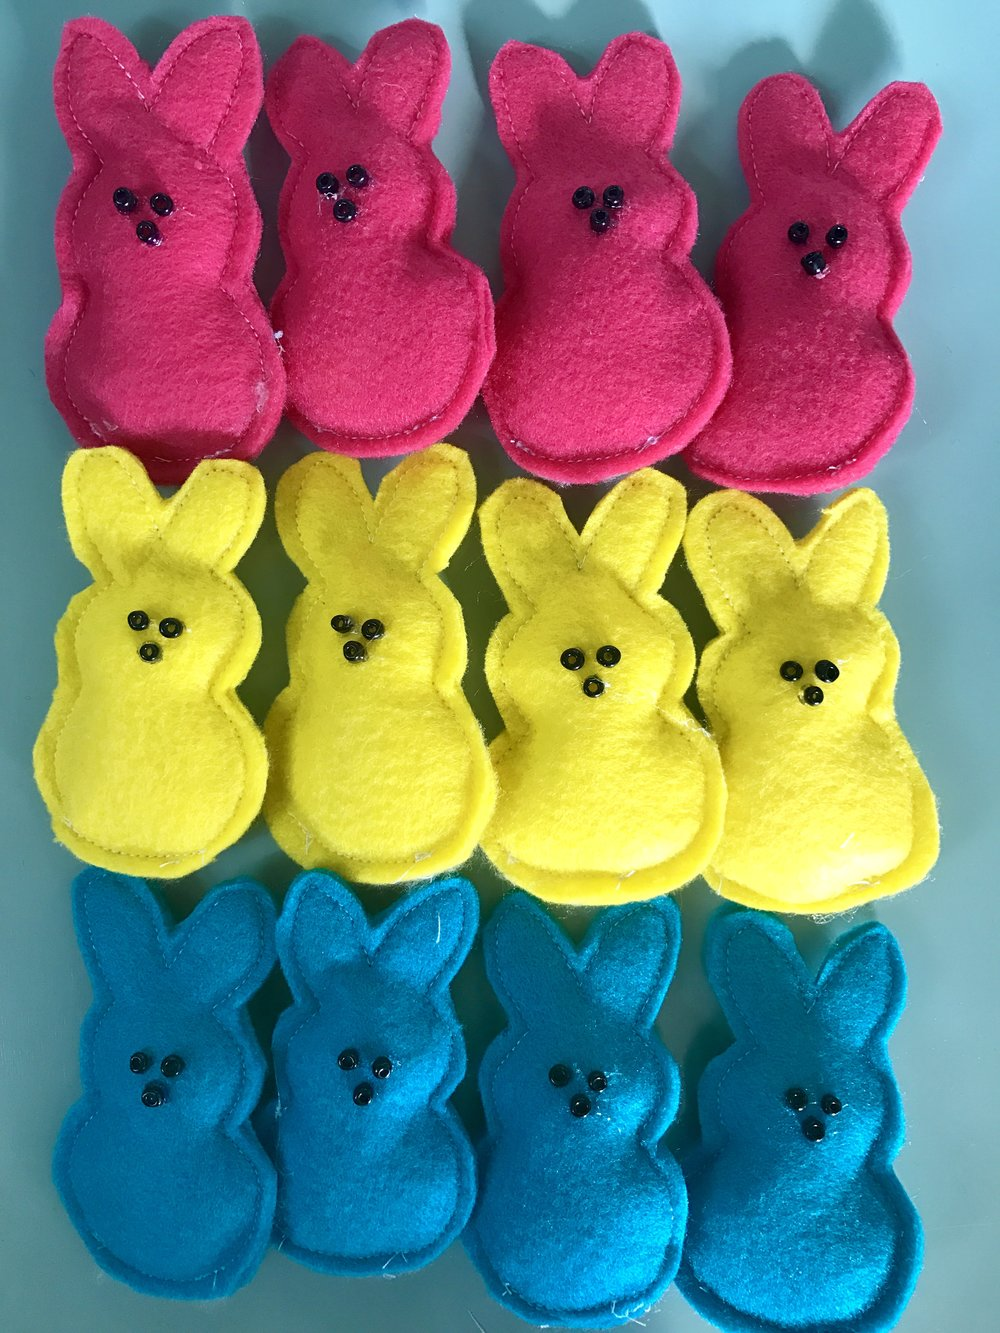 How to Make Felt Peeps - Free Template & Instructions